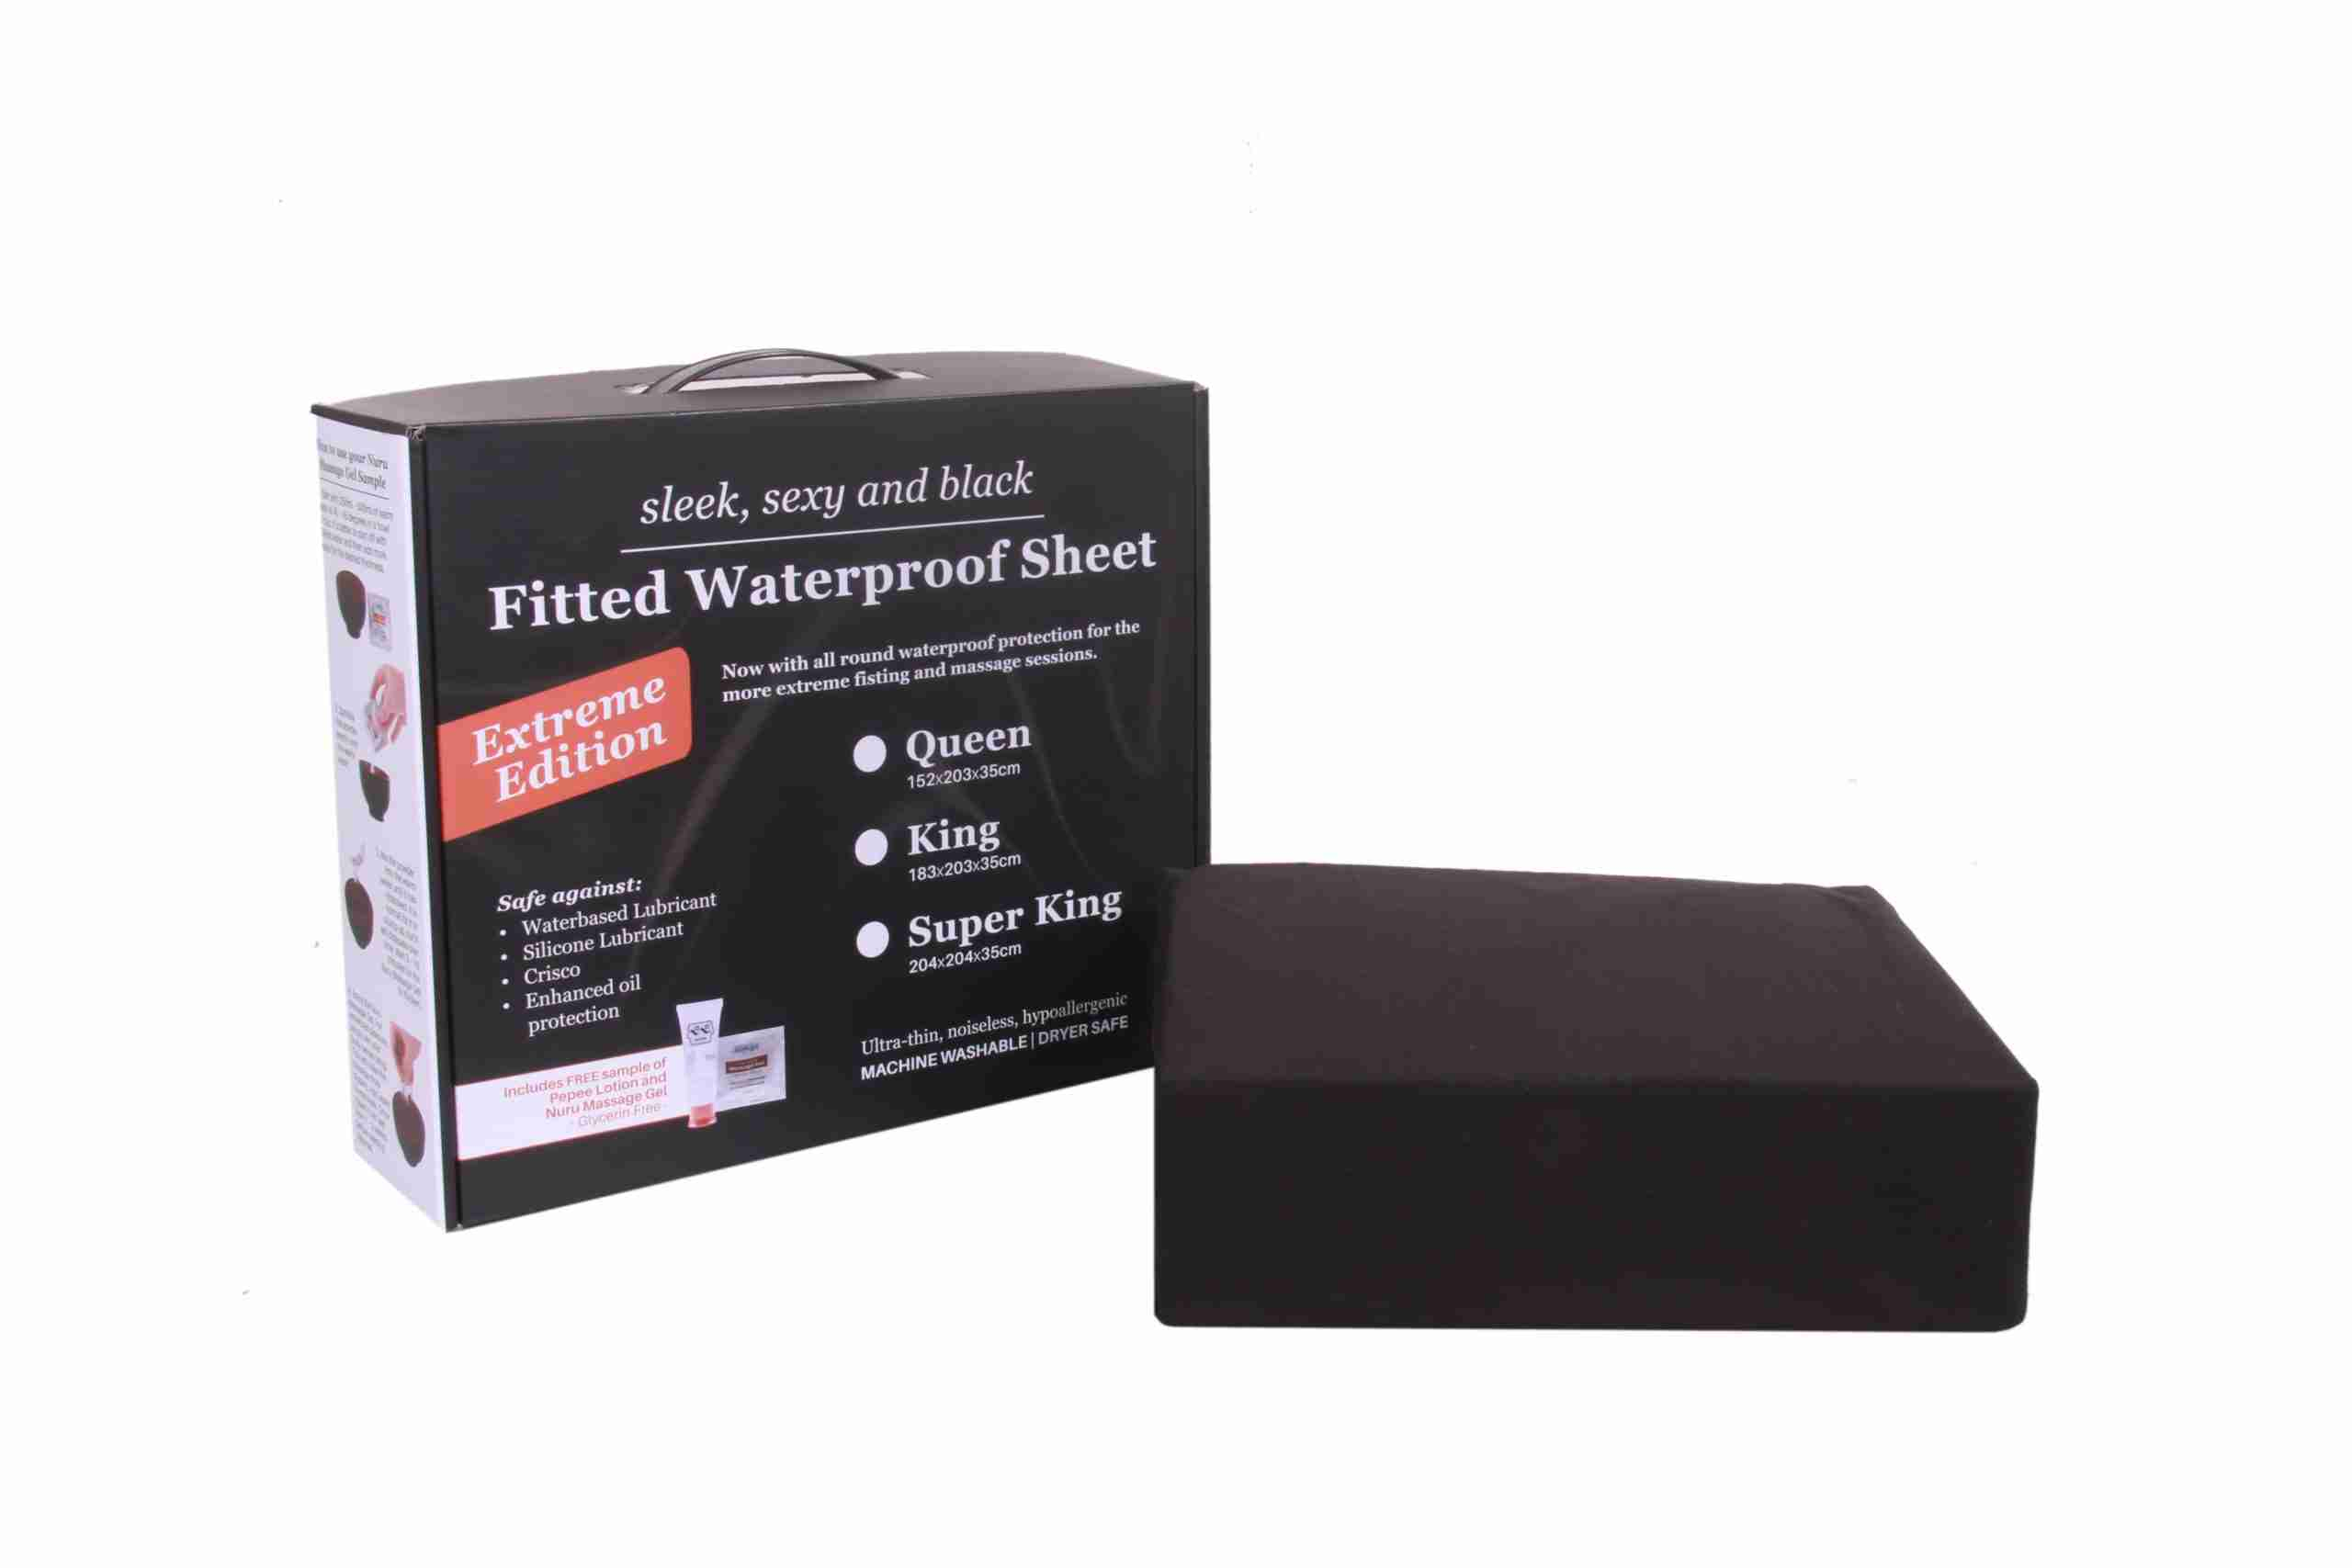 Eroticgel Australia Black Waterproof Bedding Extreme Edition Front